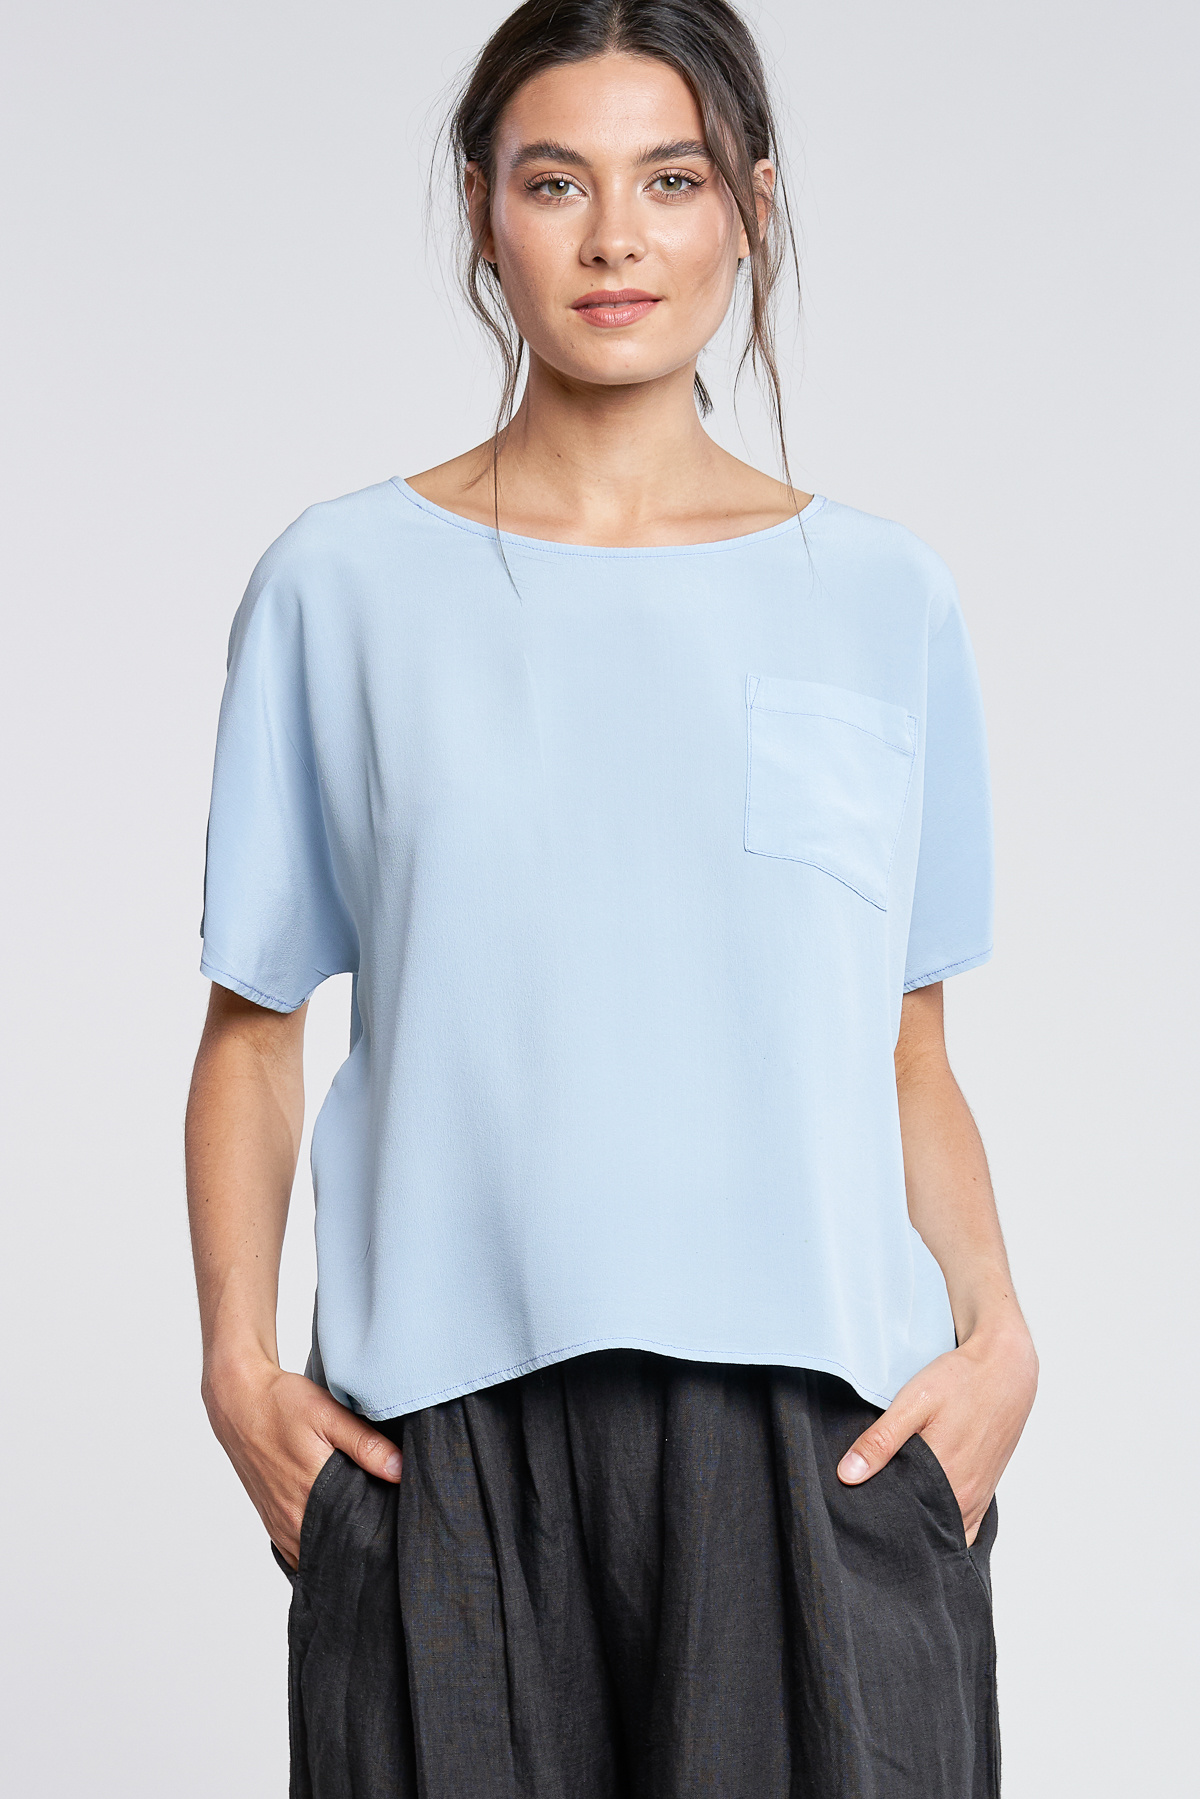 filosofia Filosofia Paige Silk Top with Front Pocket